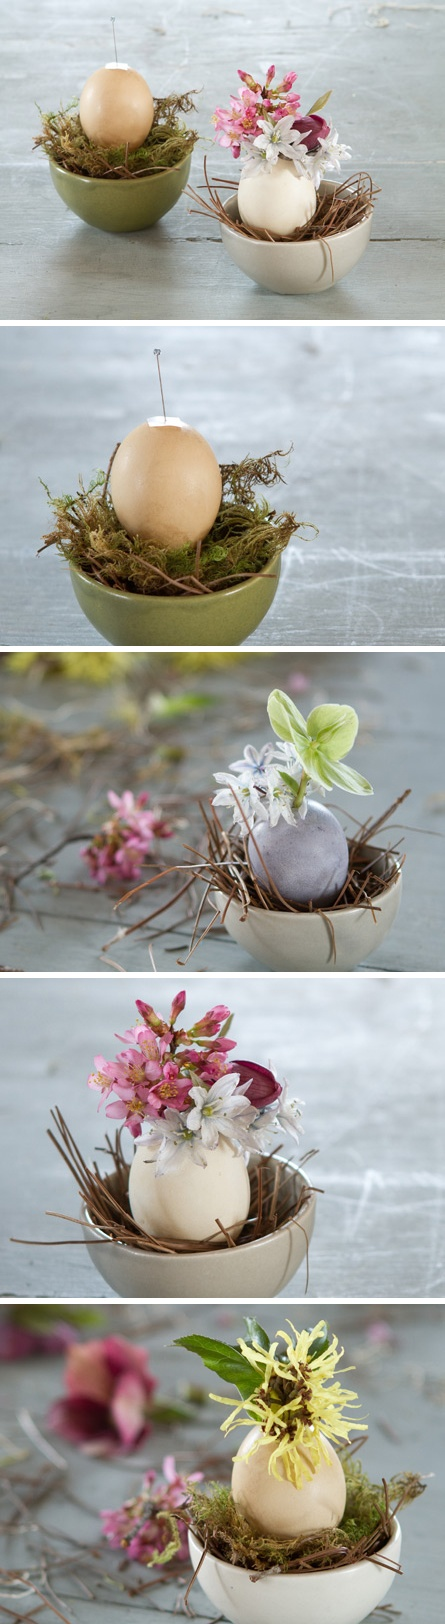 pastel bowls with moss and eggs used as vases for spring blooms is great Easter decor